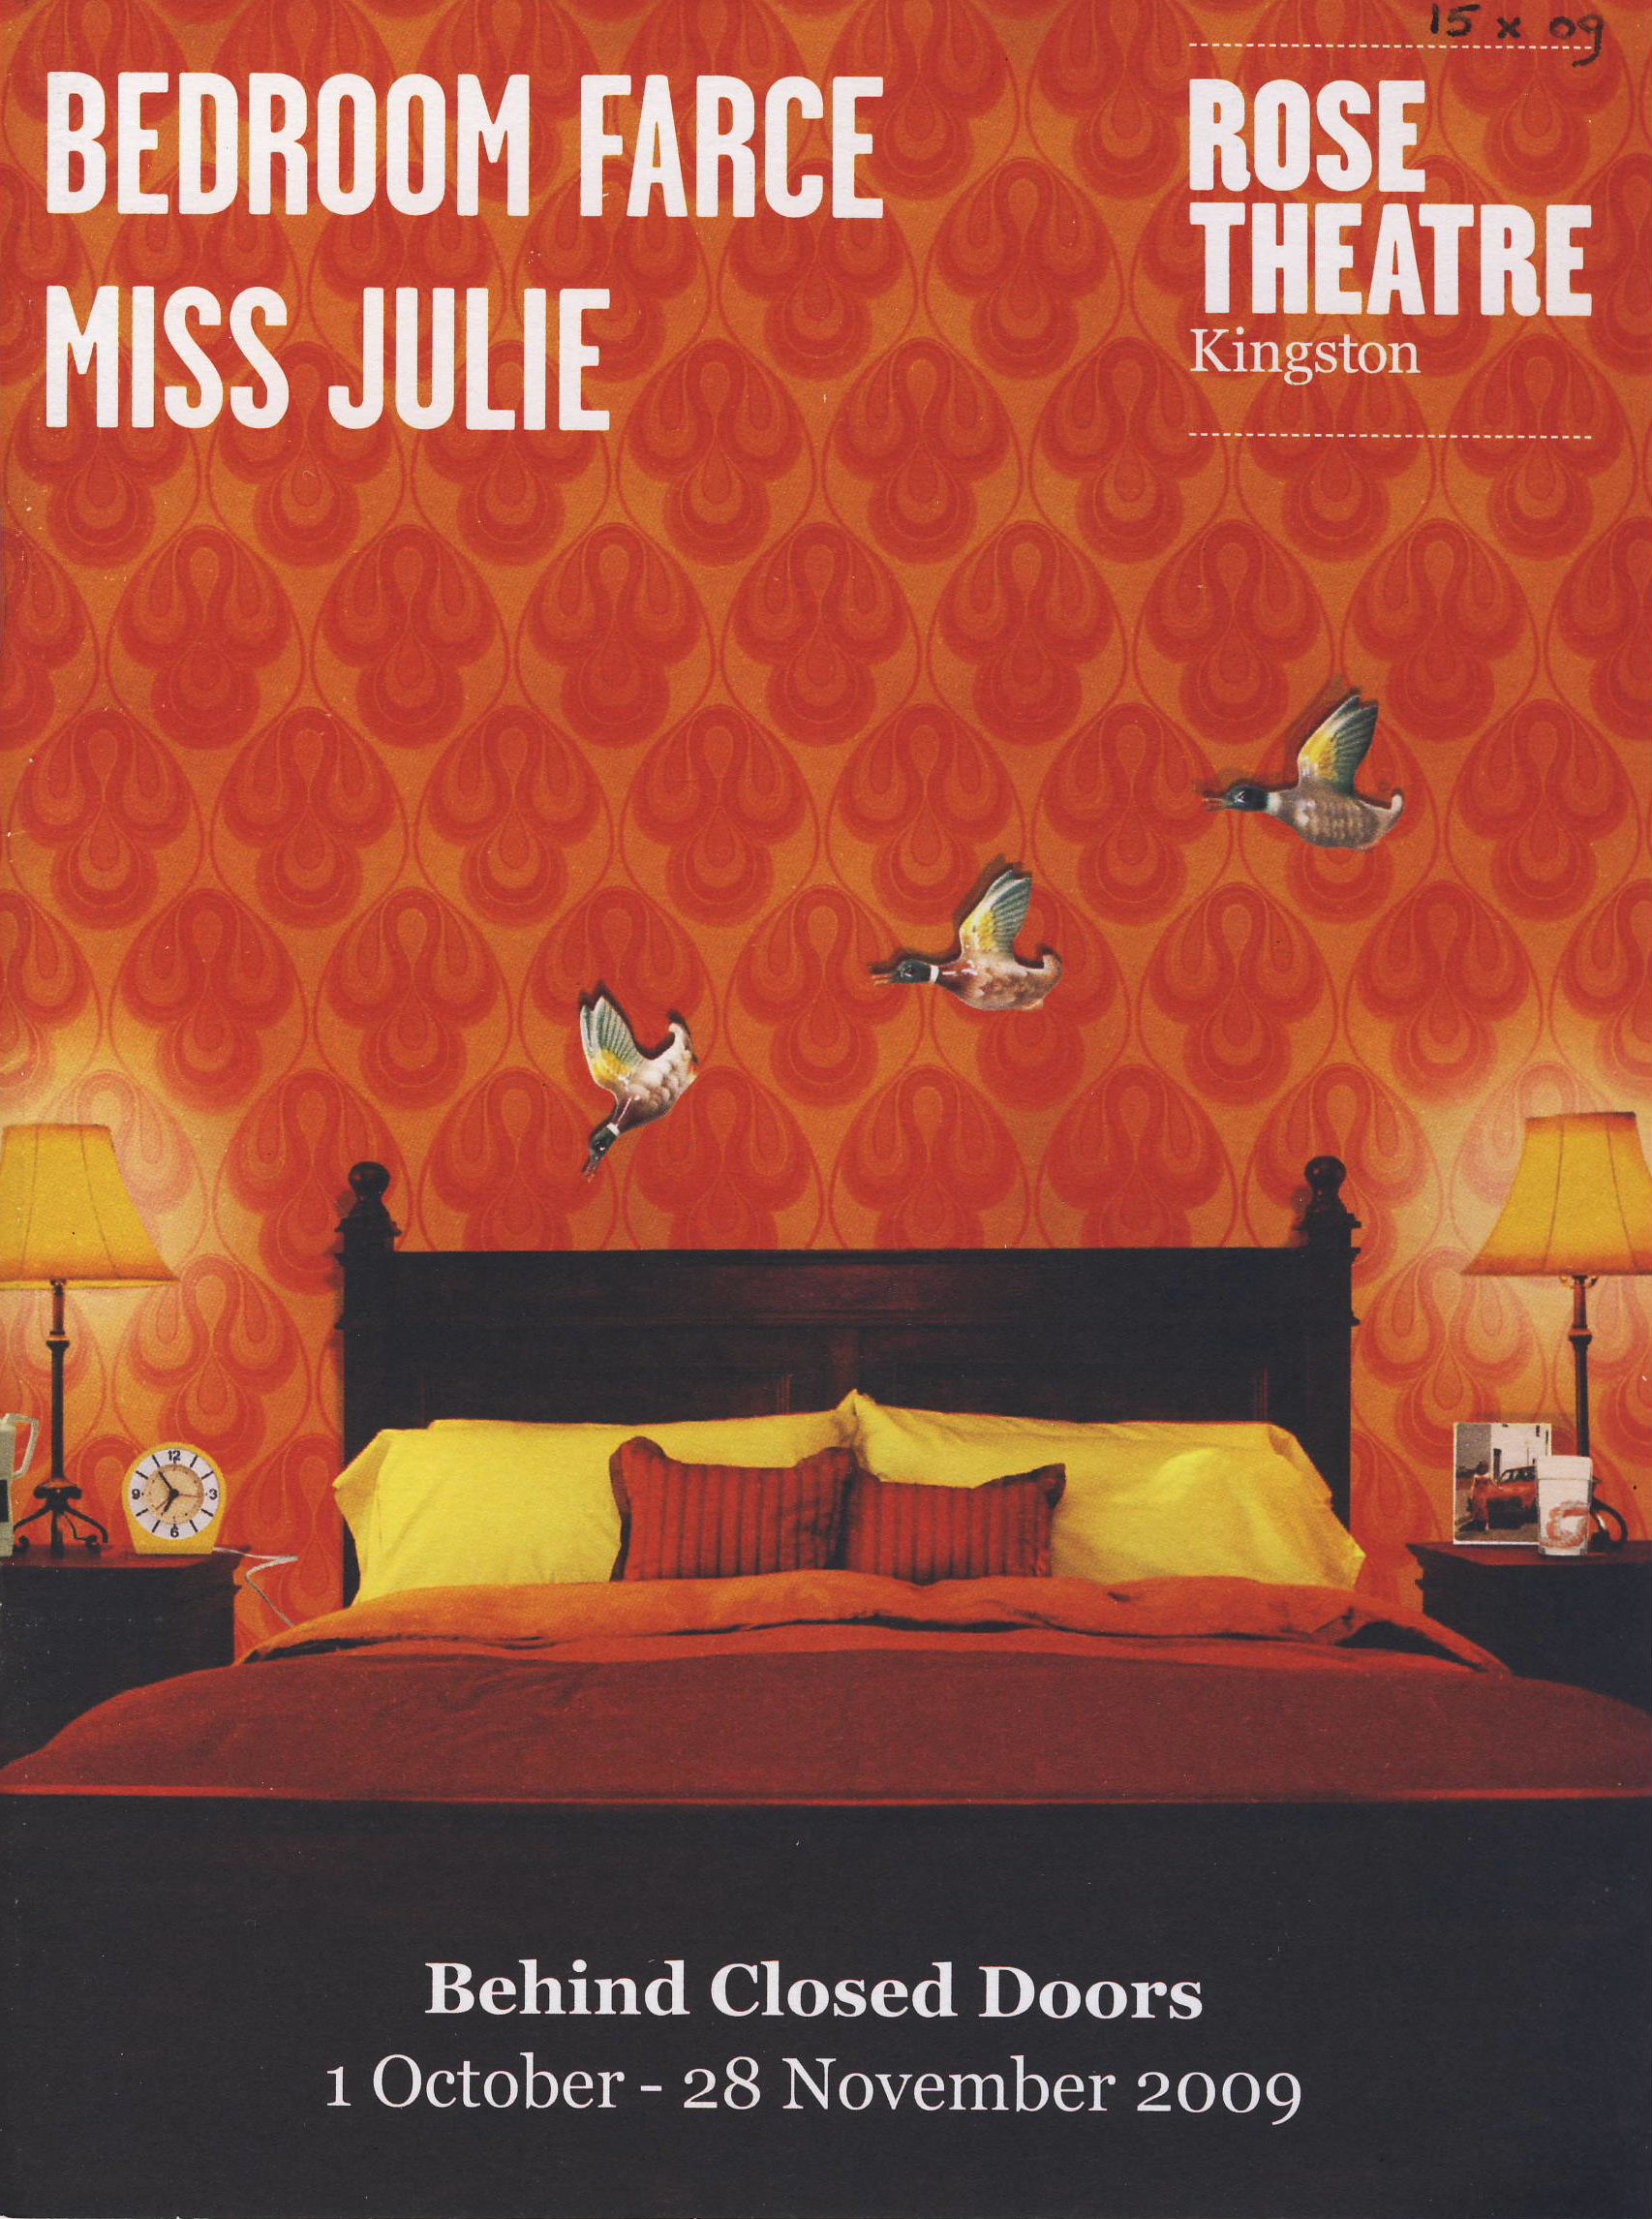 JANE ASHER 2009 Behind Closed Doors BEDROOM FARCE MISS JULIE Kingston Rose Theatre Programme ref101716 Vintage brochure is pre-owned in used condition. Measure approx 21cm x 15cm